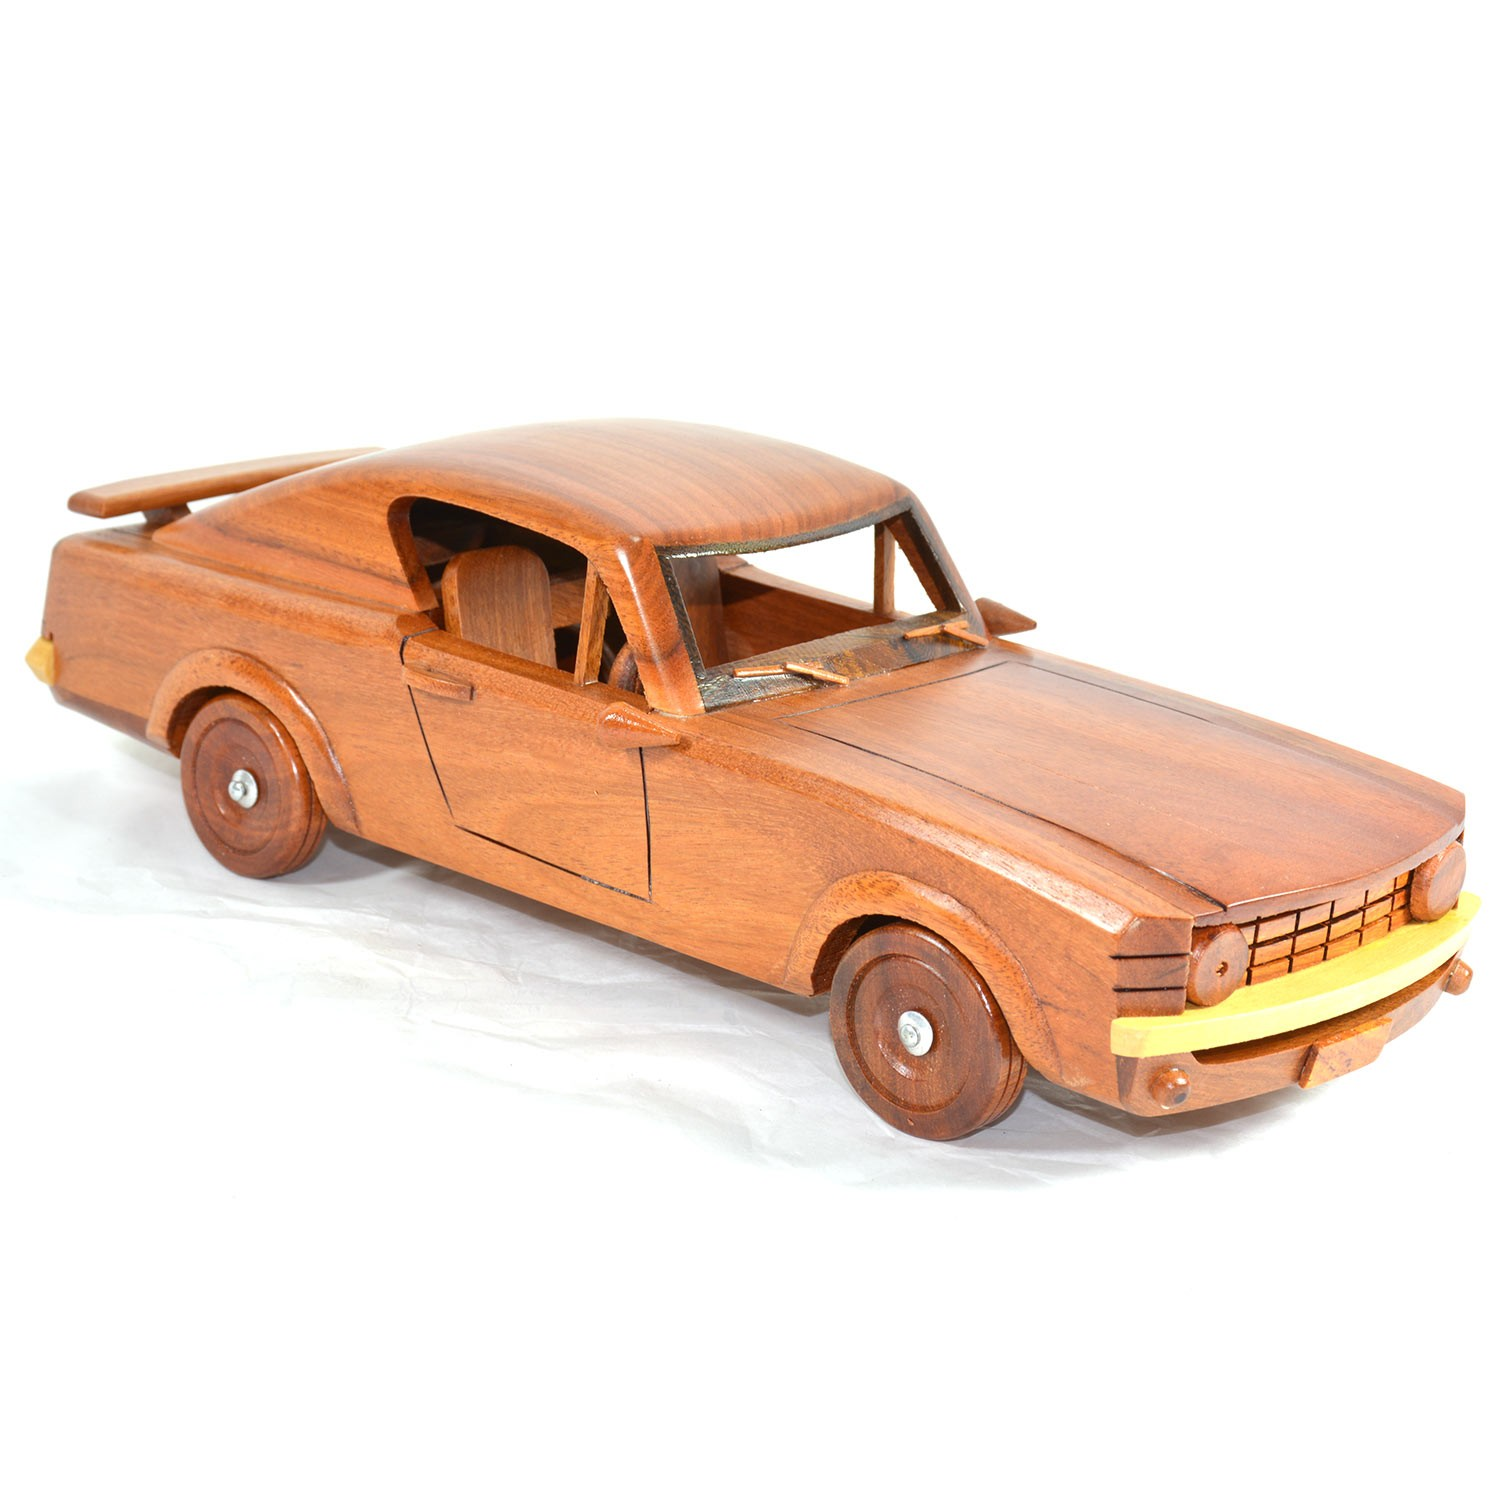 Ford Sports Car Models: Ford Mustang Sports Wooden Car Model